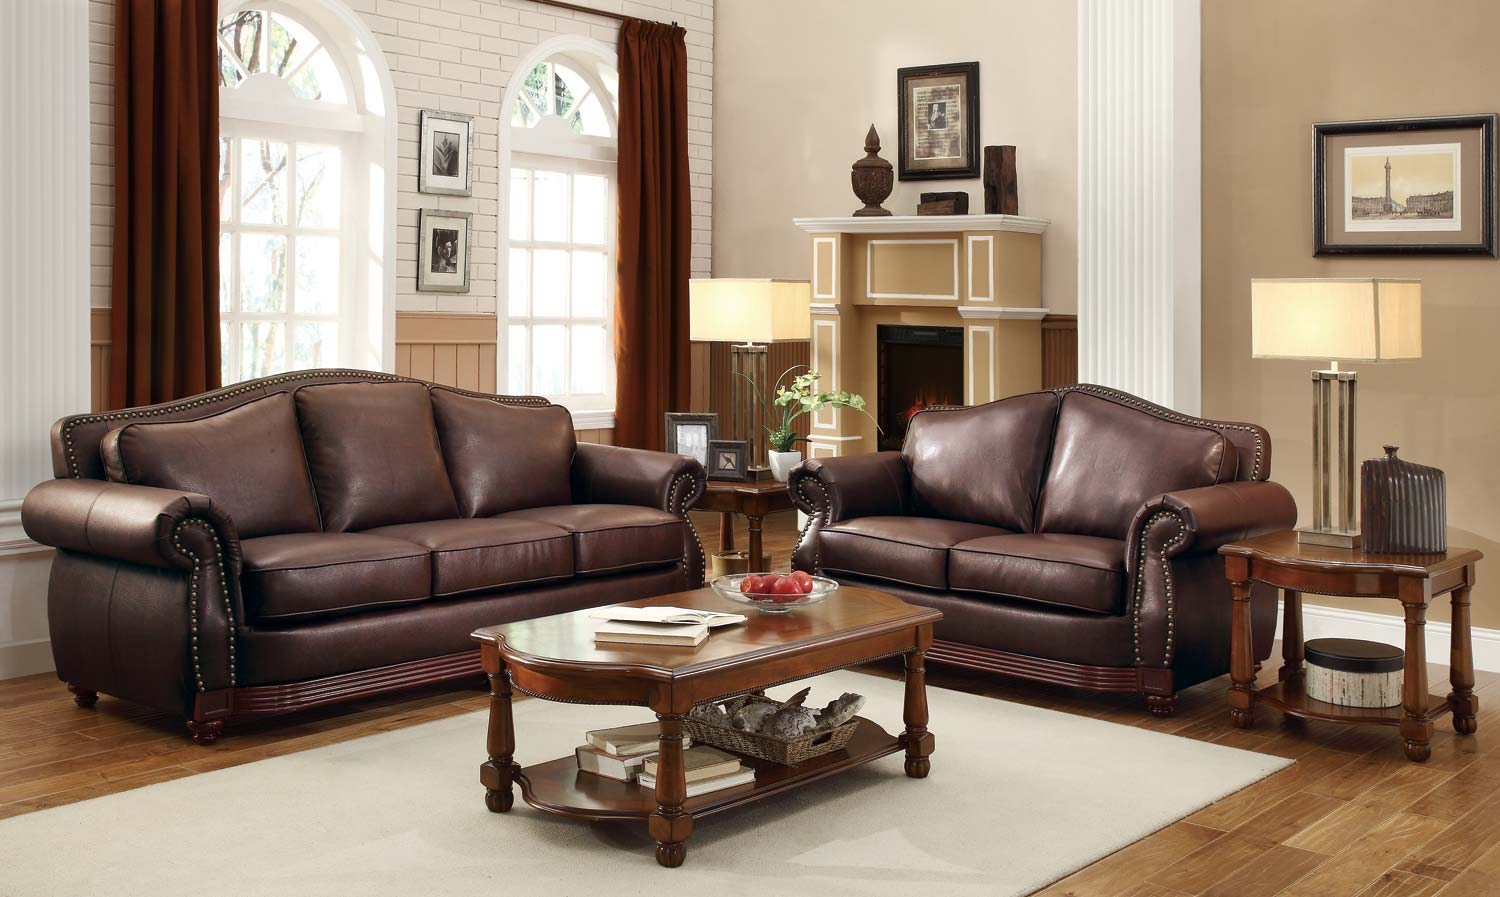 Ordinaire Homelegance Midwood Bonded Leather Sofa Collection   Dark Brown